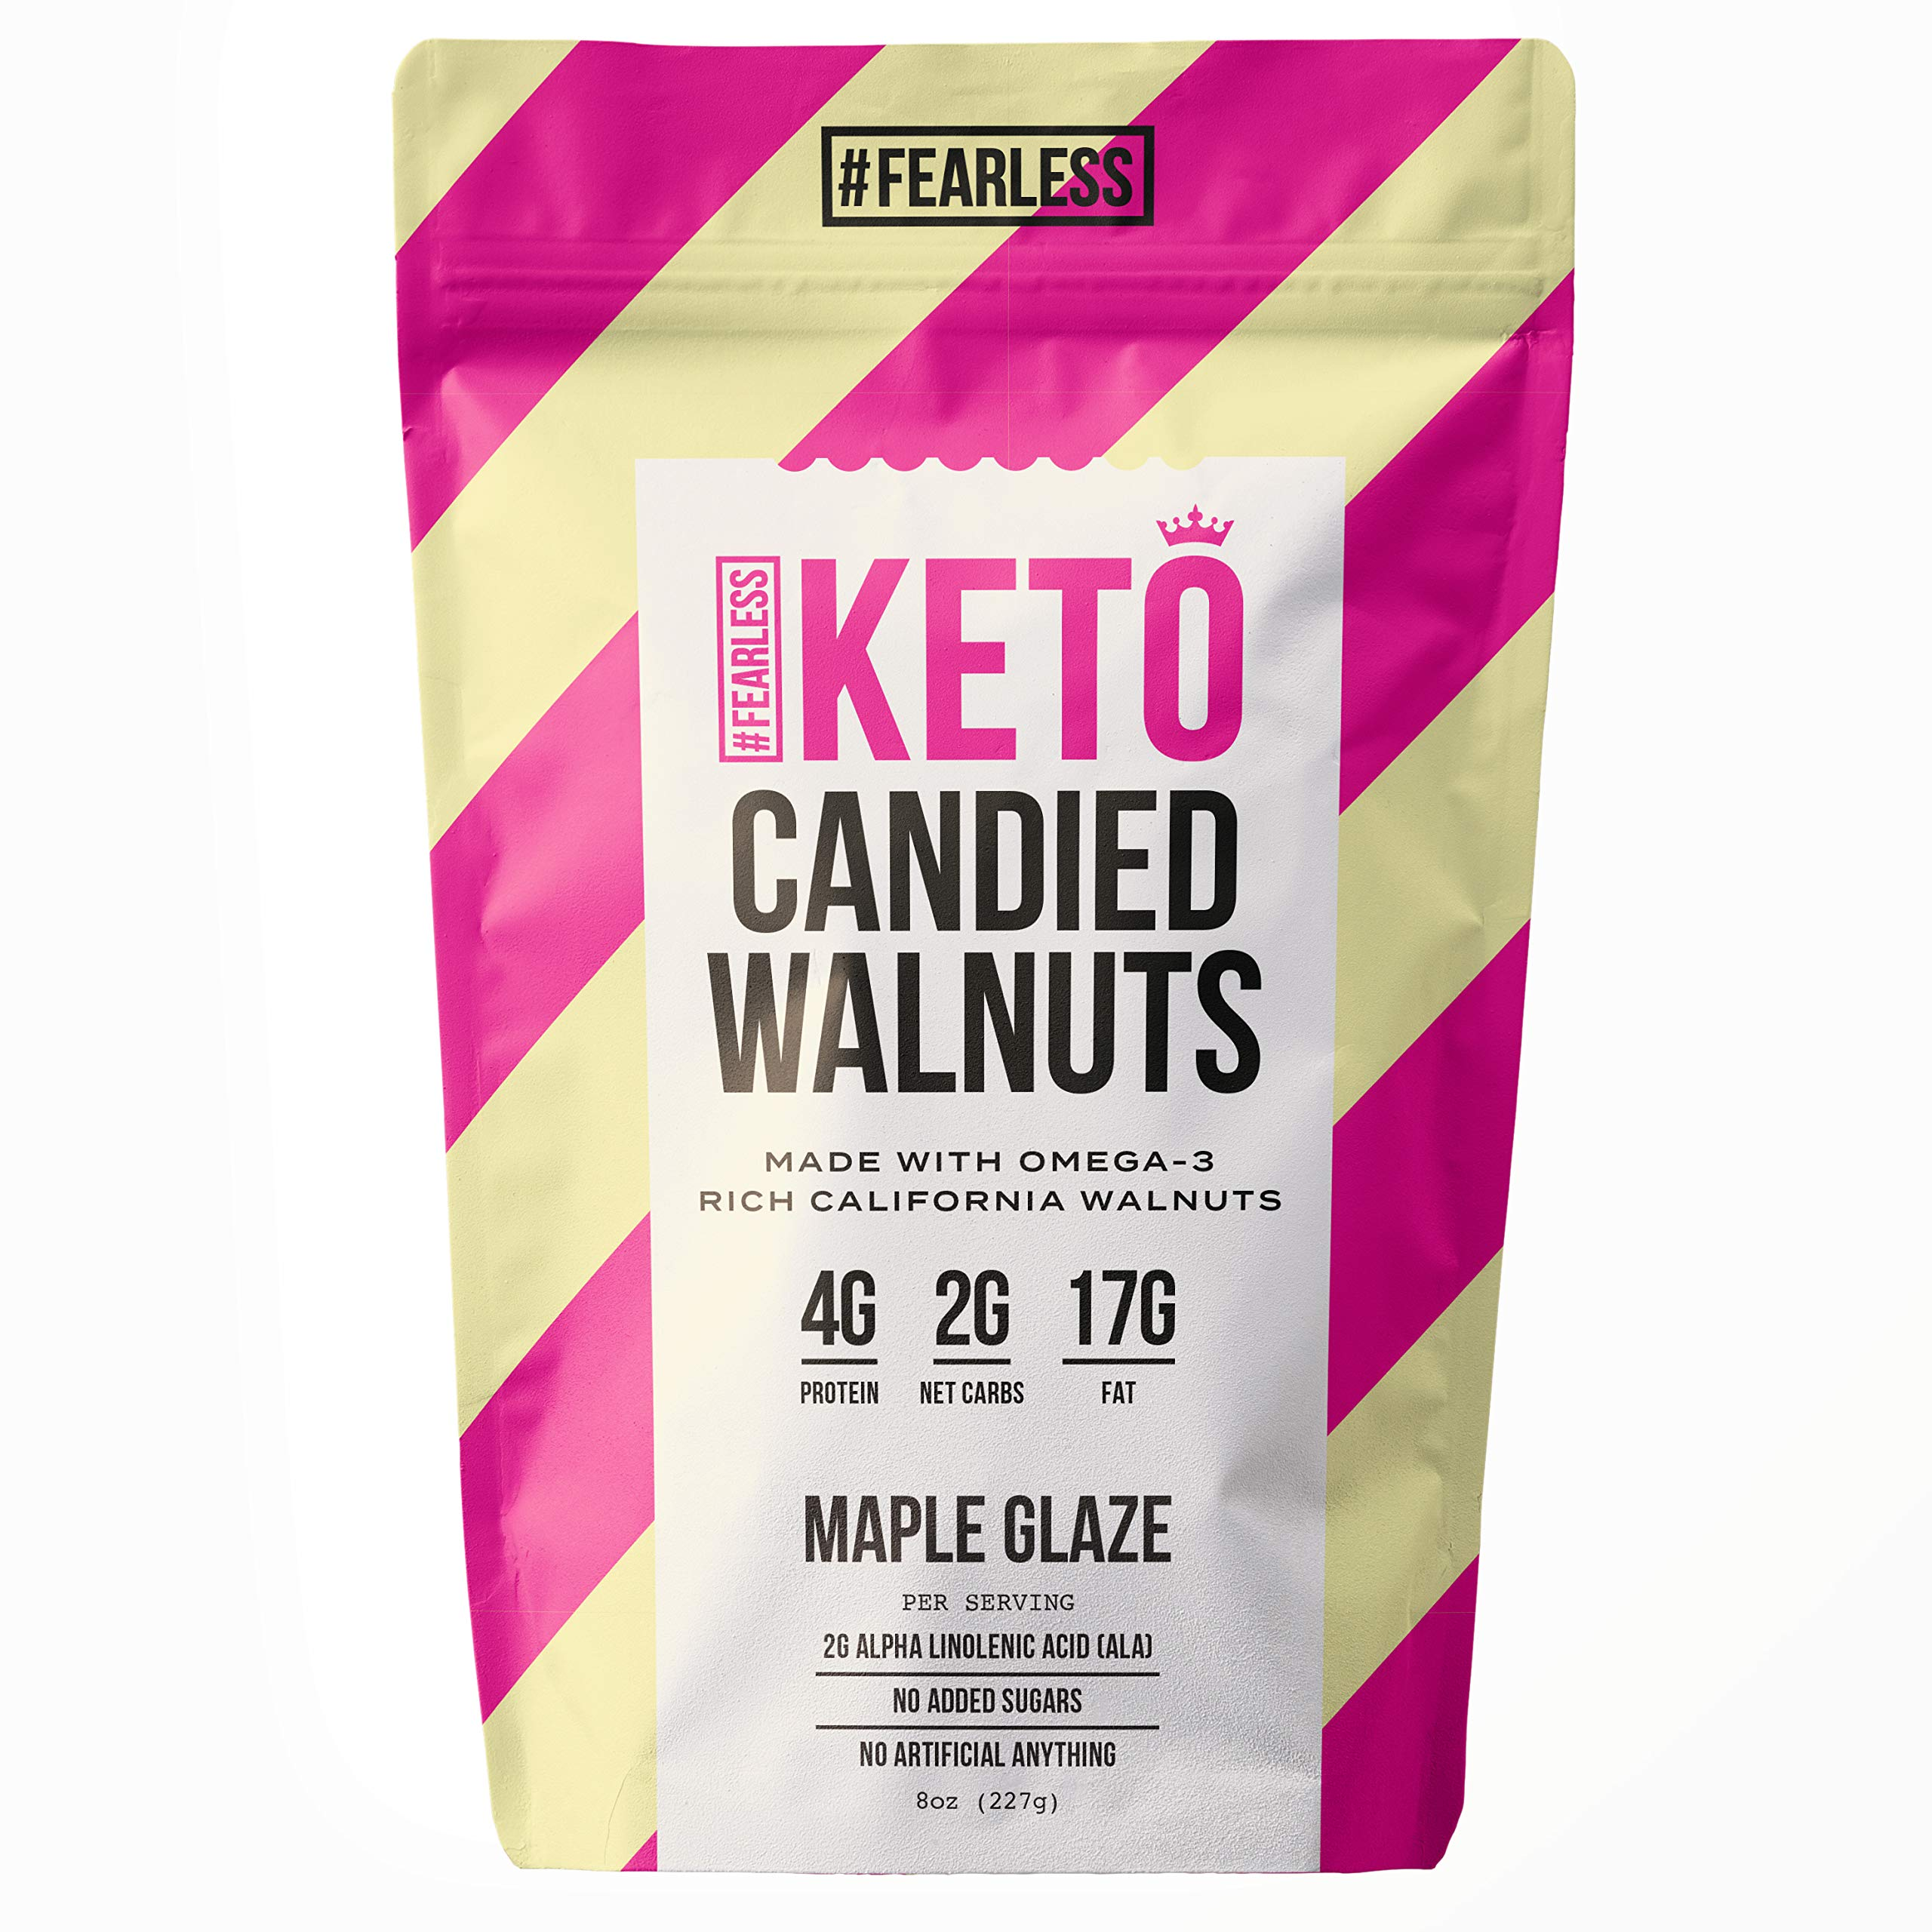 Fearless Keto Small Batch Hand-Roasted Candied Walnuts - Low Carb, High Protein, Monk Fruit Sweetened, Nut Mix, Made with Omega-3 Rich California Walnuts, 8 oz (Maple Glaze Flavor) by Fearless Keto